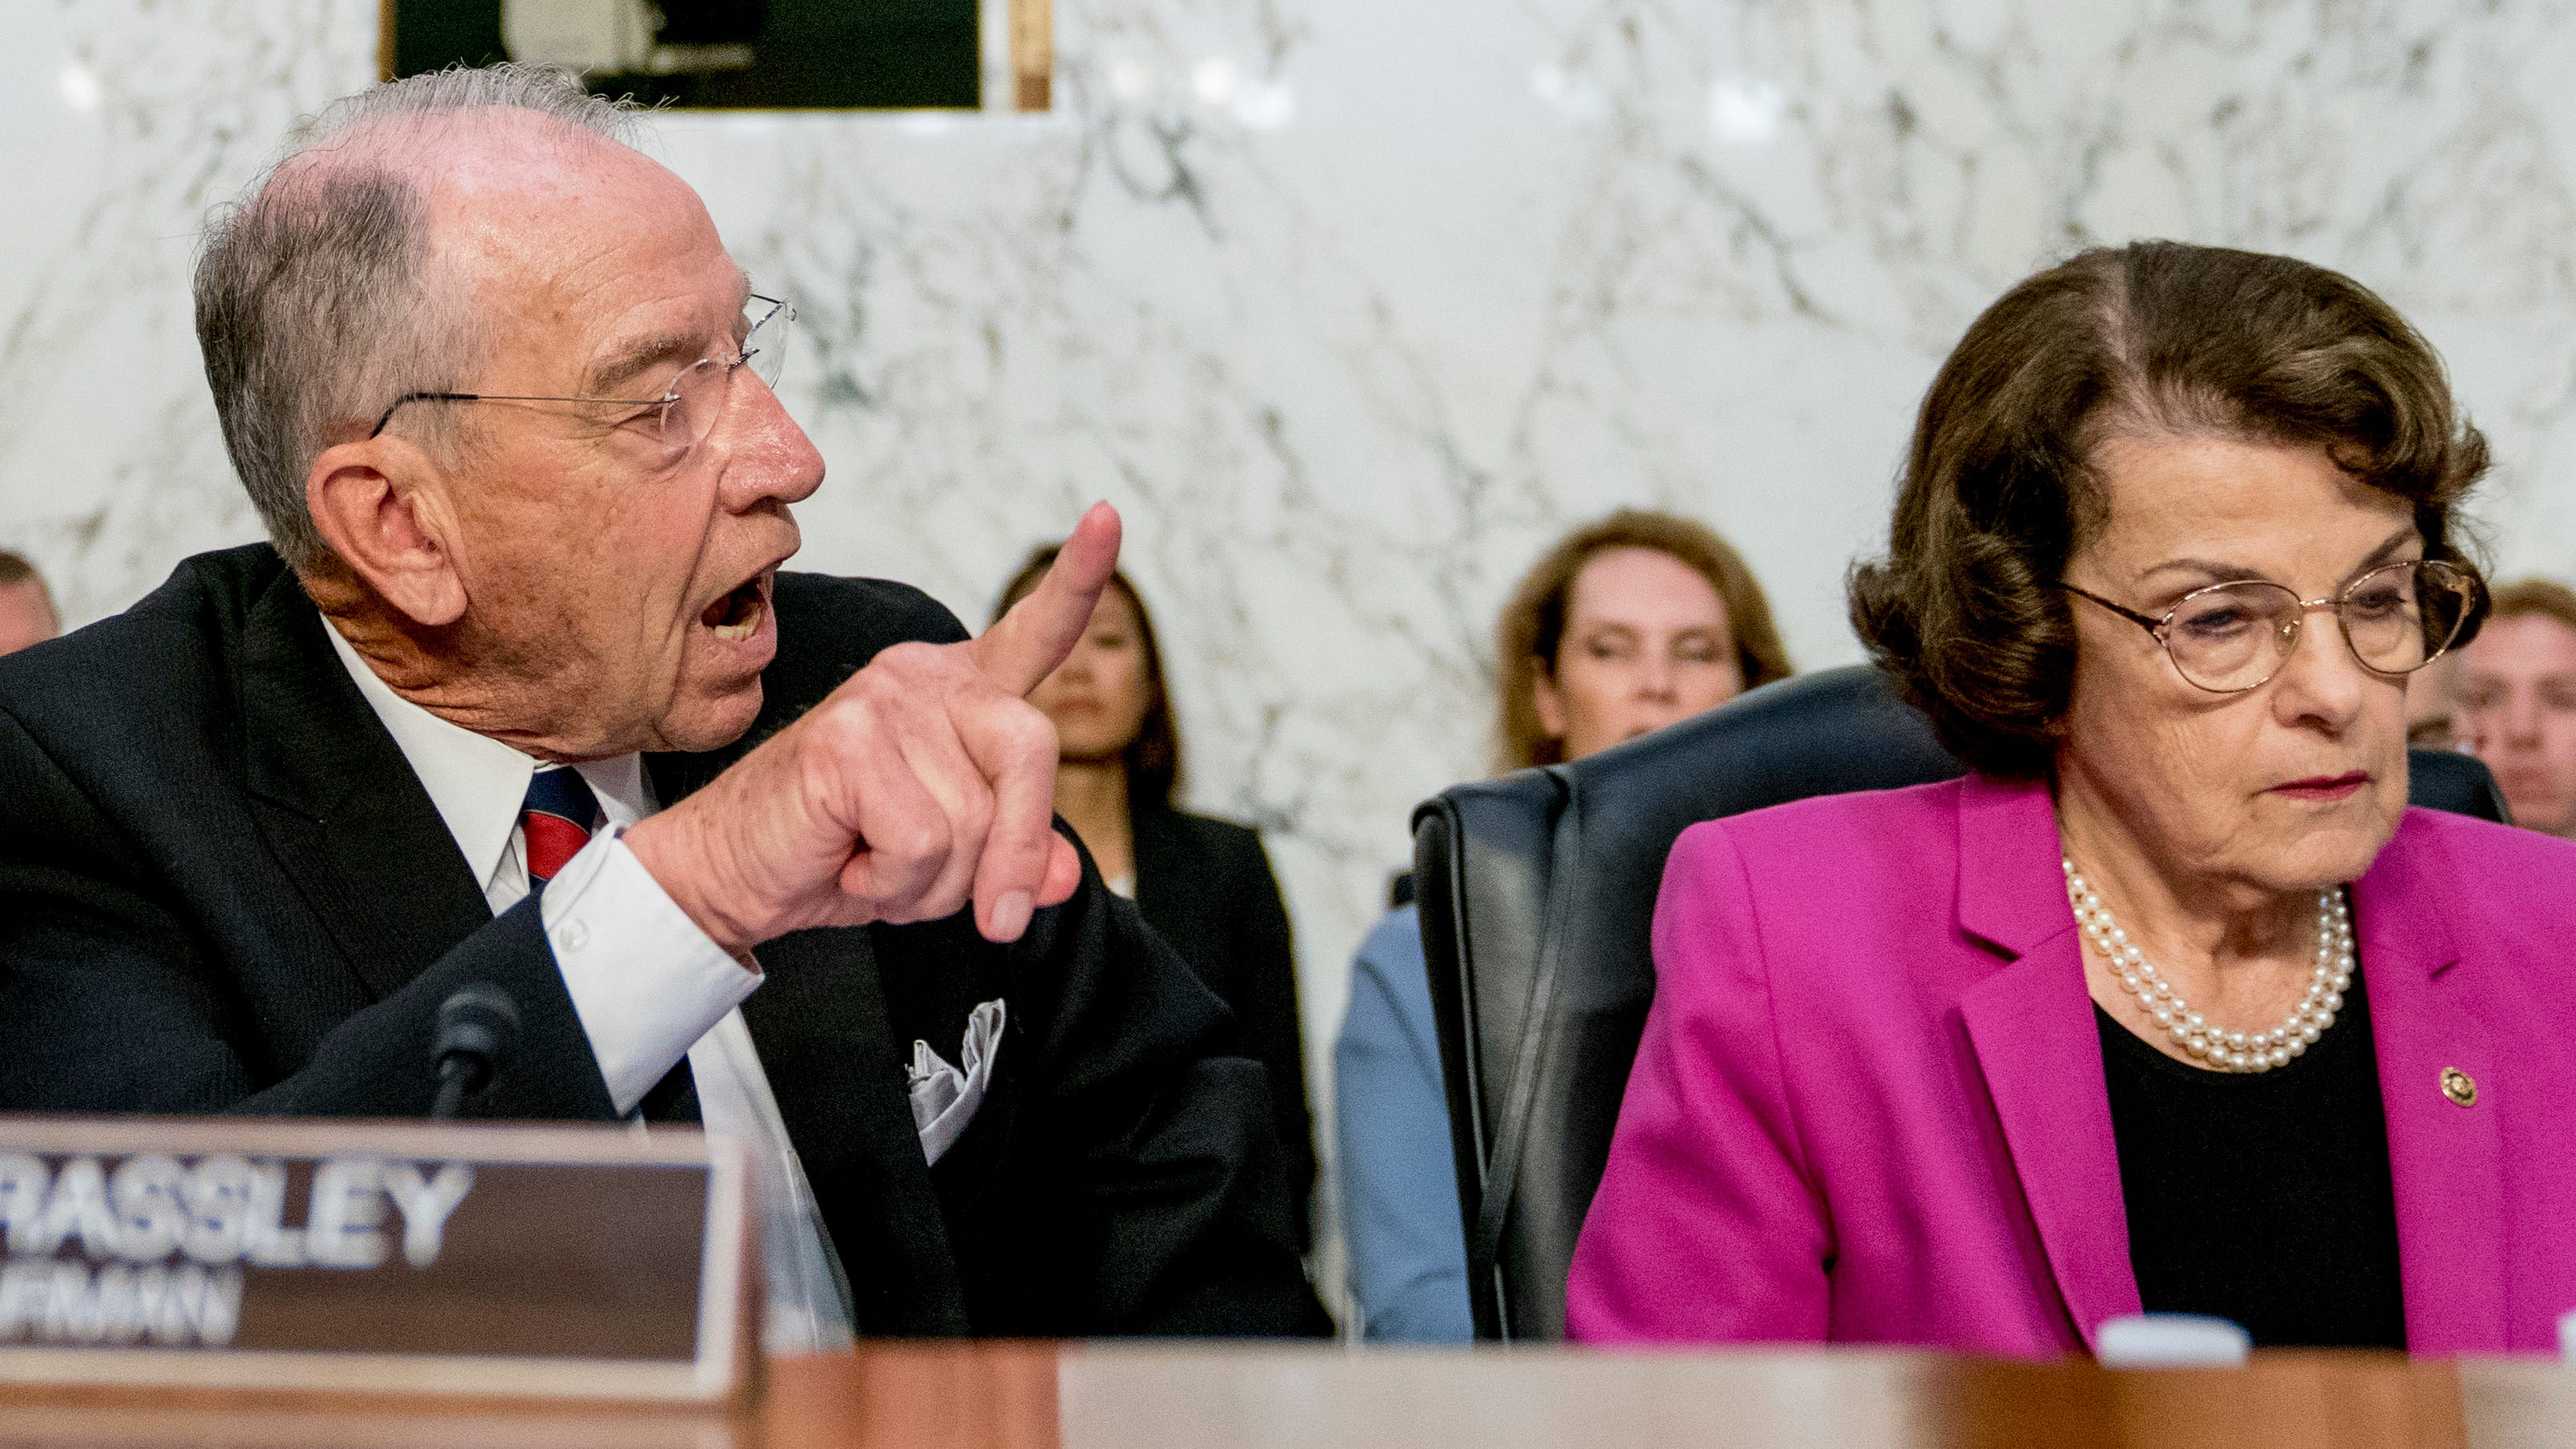 Senate Judiciary Chairman Chuck Grassley, R-Iowa, center, accompanied by Sen. Orrin Hatch, R-Utah, left, and Sen. Dianne Feinstein, D-Calif., the ranking member on the Senate Judiciary Committee, right, speaks toward the committee Democrats as President Donald Trump's Supreme Court nominee, Brett Kavanaugh, a federal appeals court judge, appears before the Senate Judiciary Committee on Capitol Hill in Washington, Tuesday, Sept. 4, 2018, to begin his confirmation to replace retired Justice Anthony Kennedy.